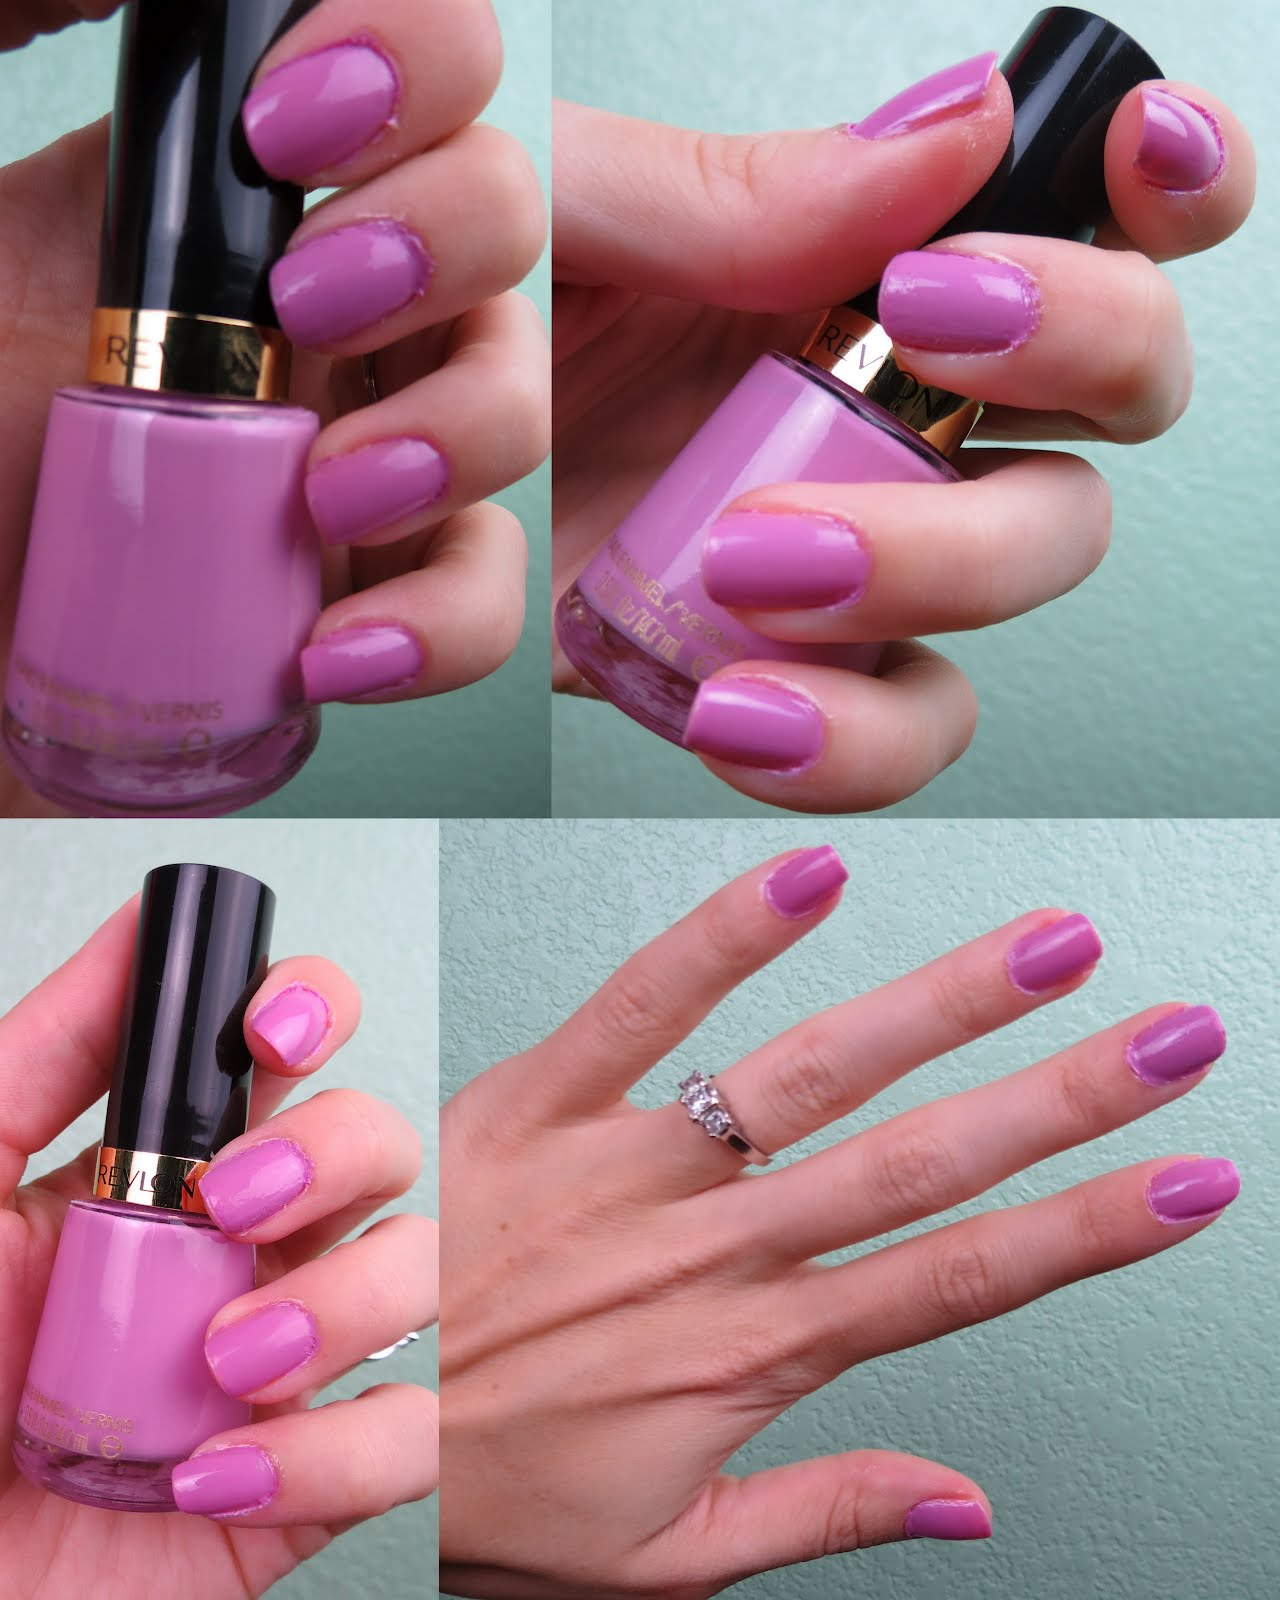 True Beauty Lies Within You ♥: Current Nail Polish